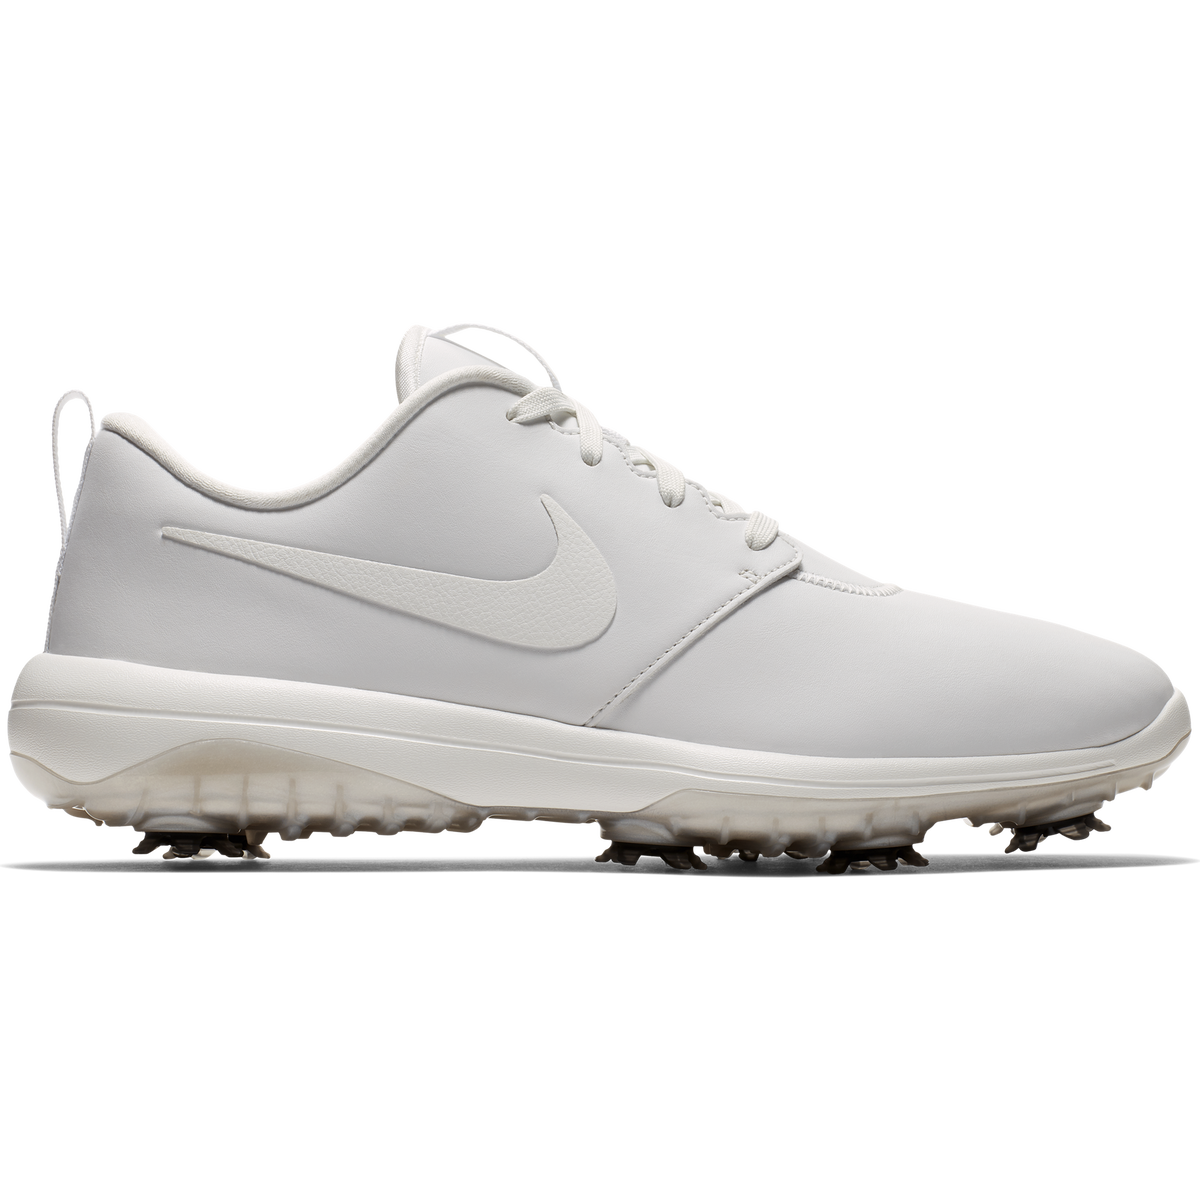 71b265797a19 Images. Nike Roshe G Tour Men  39 s Golf Shoe - White